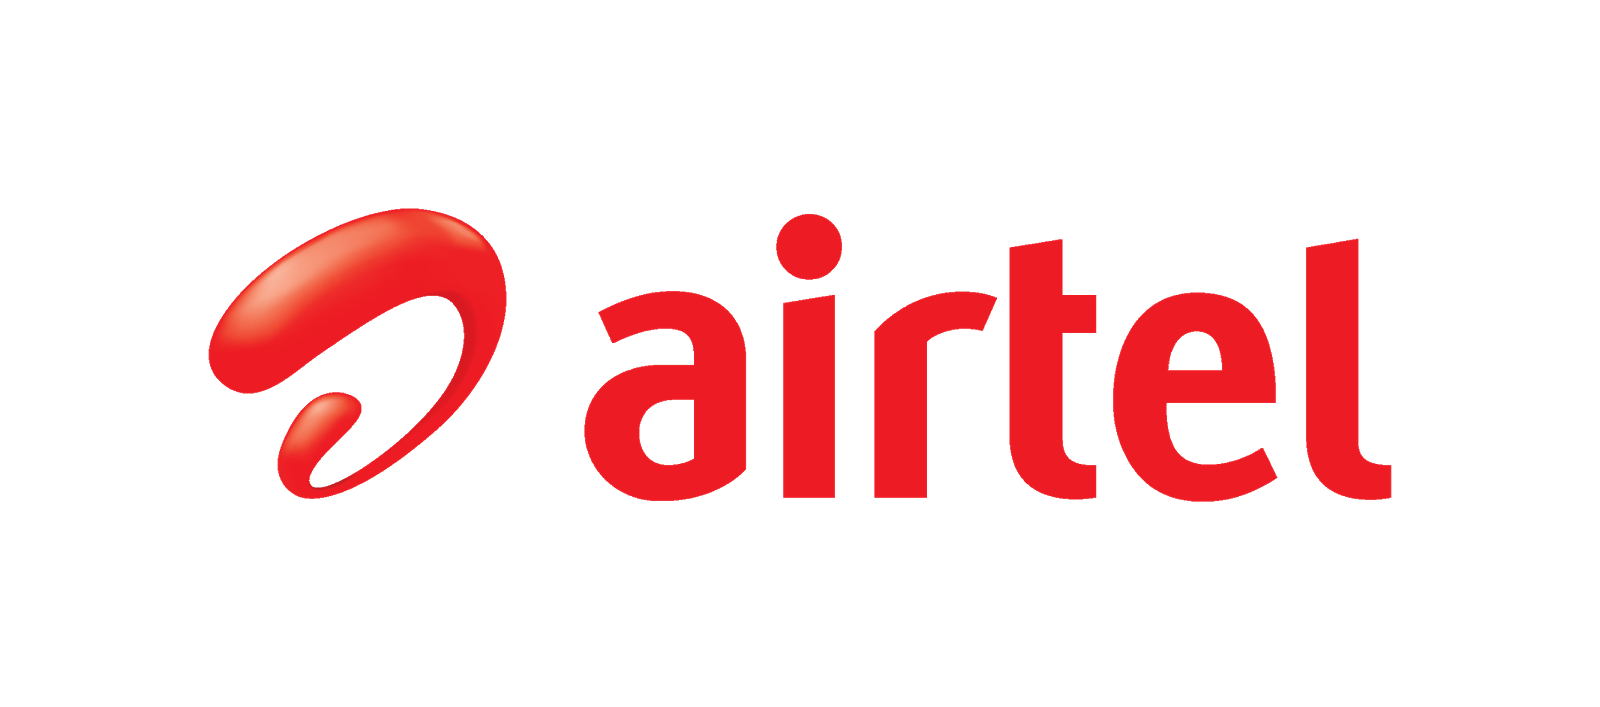 Airtel Offer 1.4GB data per day along side with unlimited free voice calls